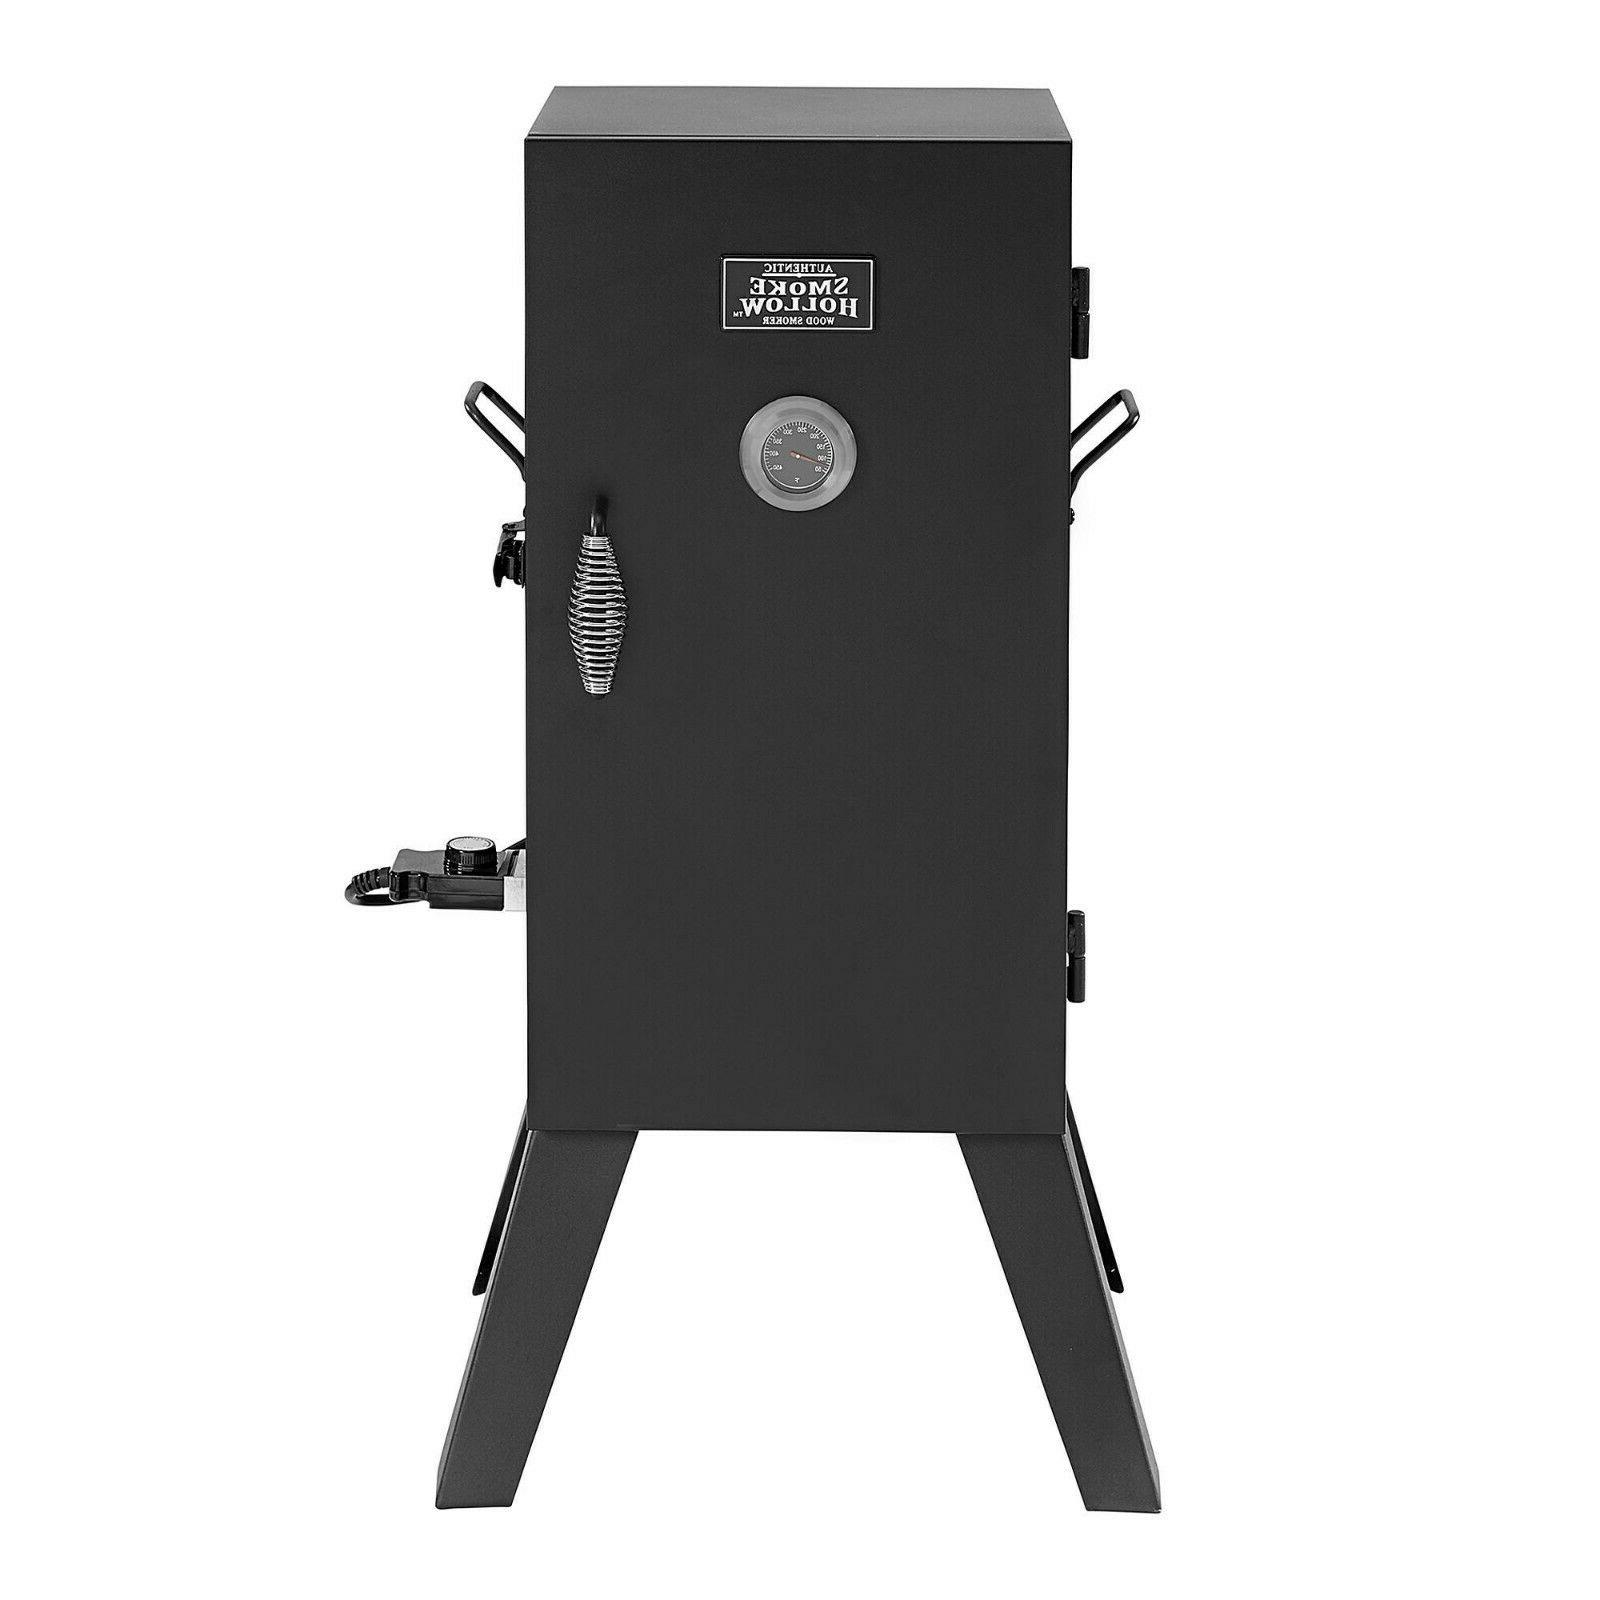 Digital Bbq Barbecue Outdoor